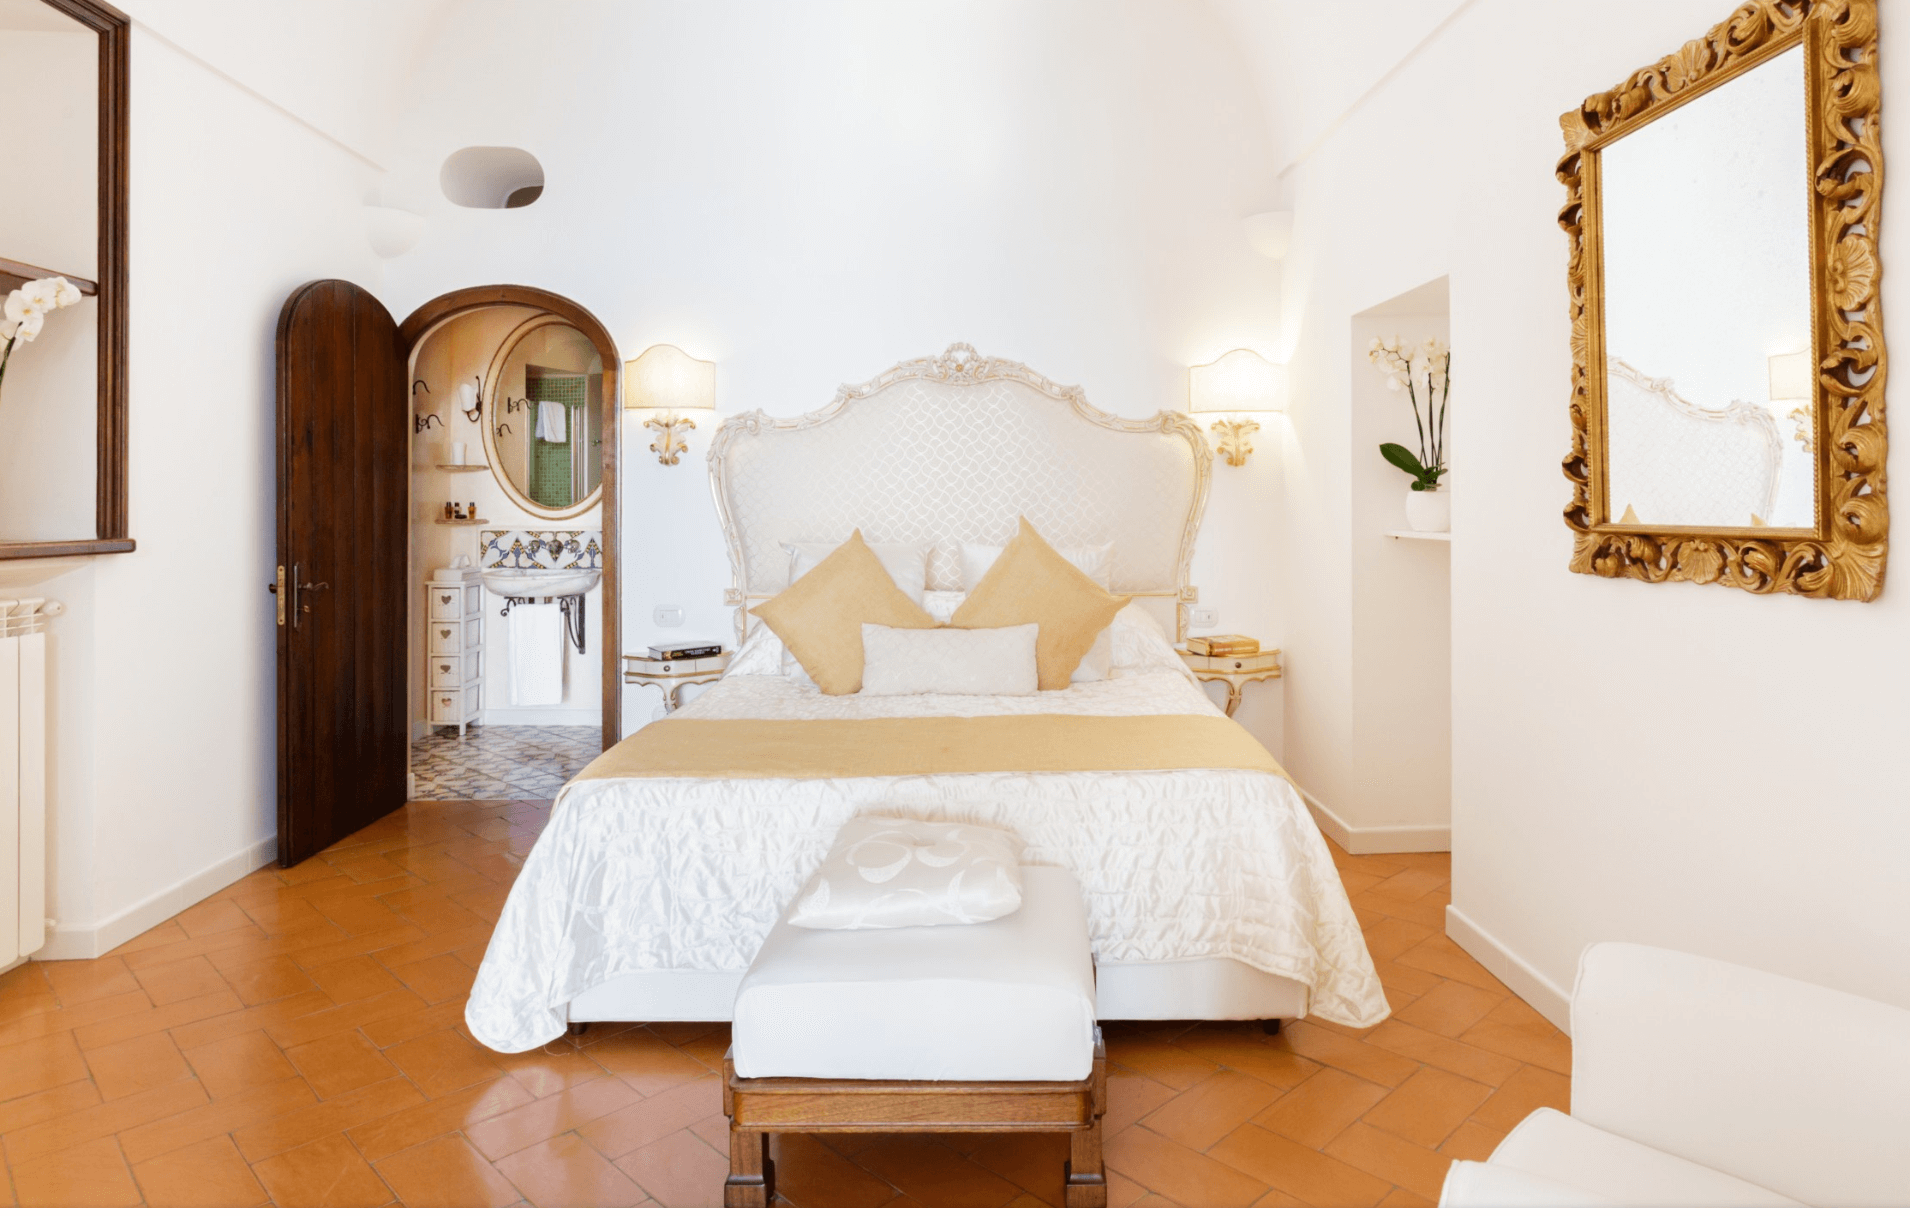 an image of an airbnb bedroom in Positano, Italy